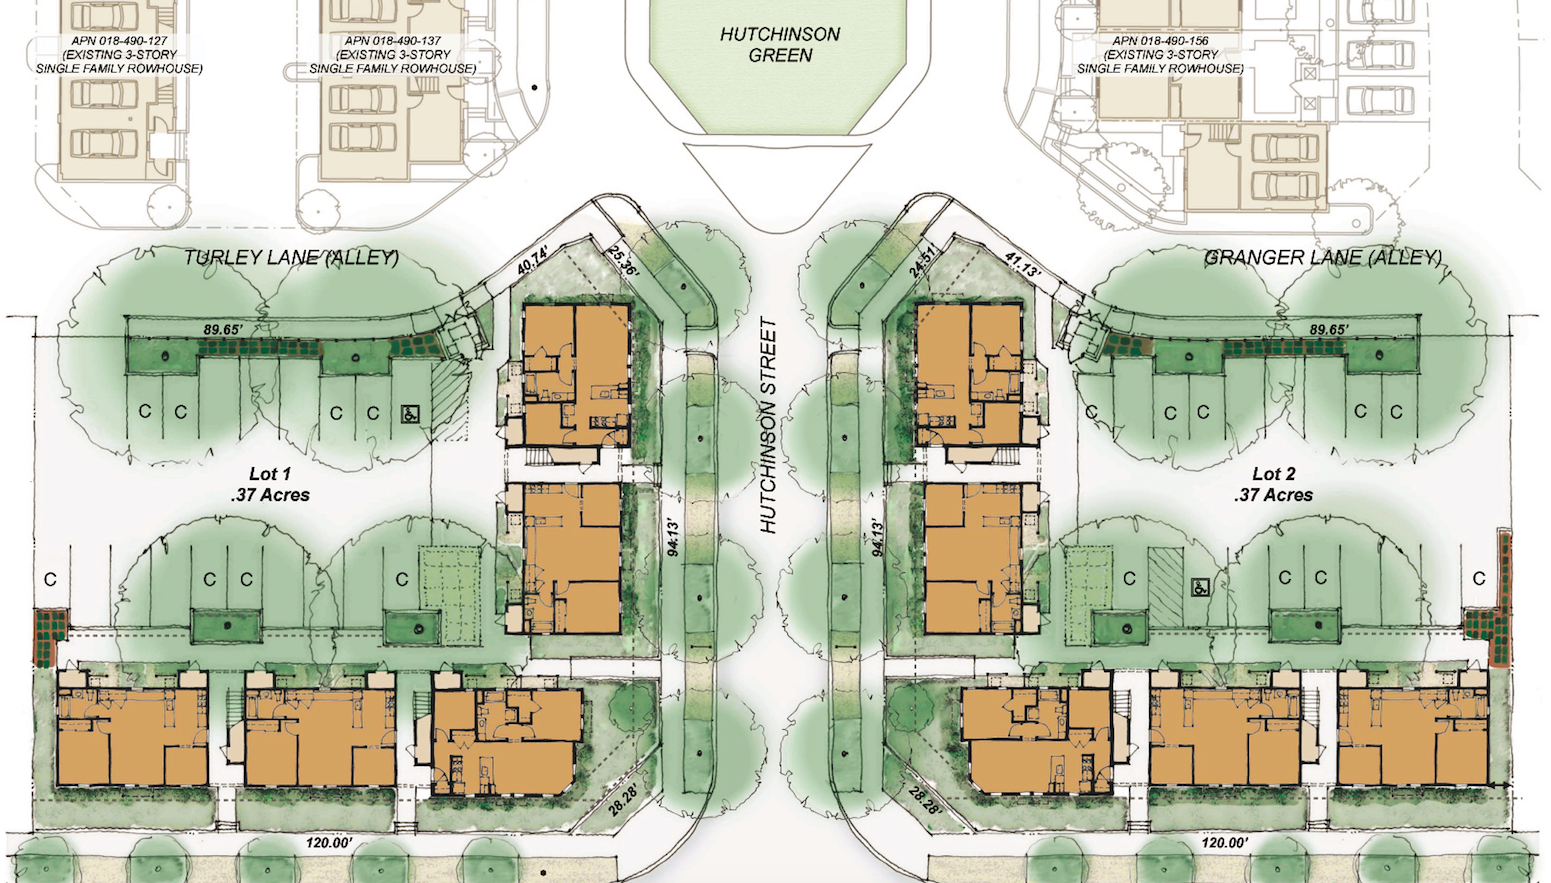 Site plan for Hutchinson Green Apartments, Chico, Calif.